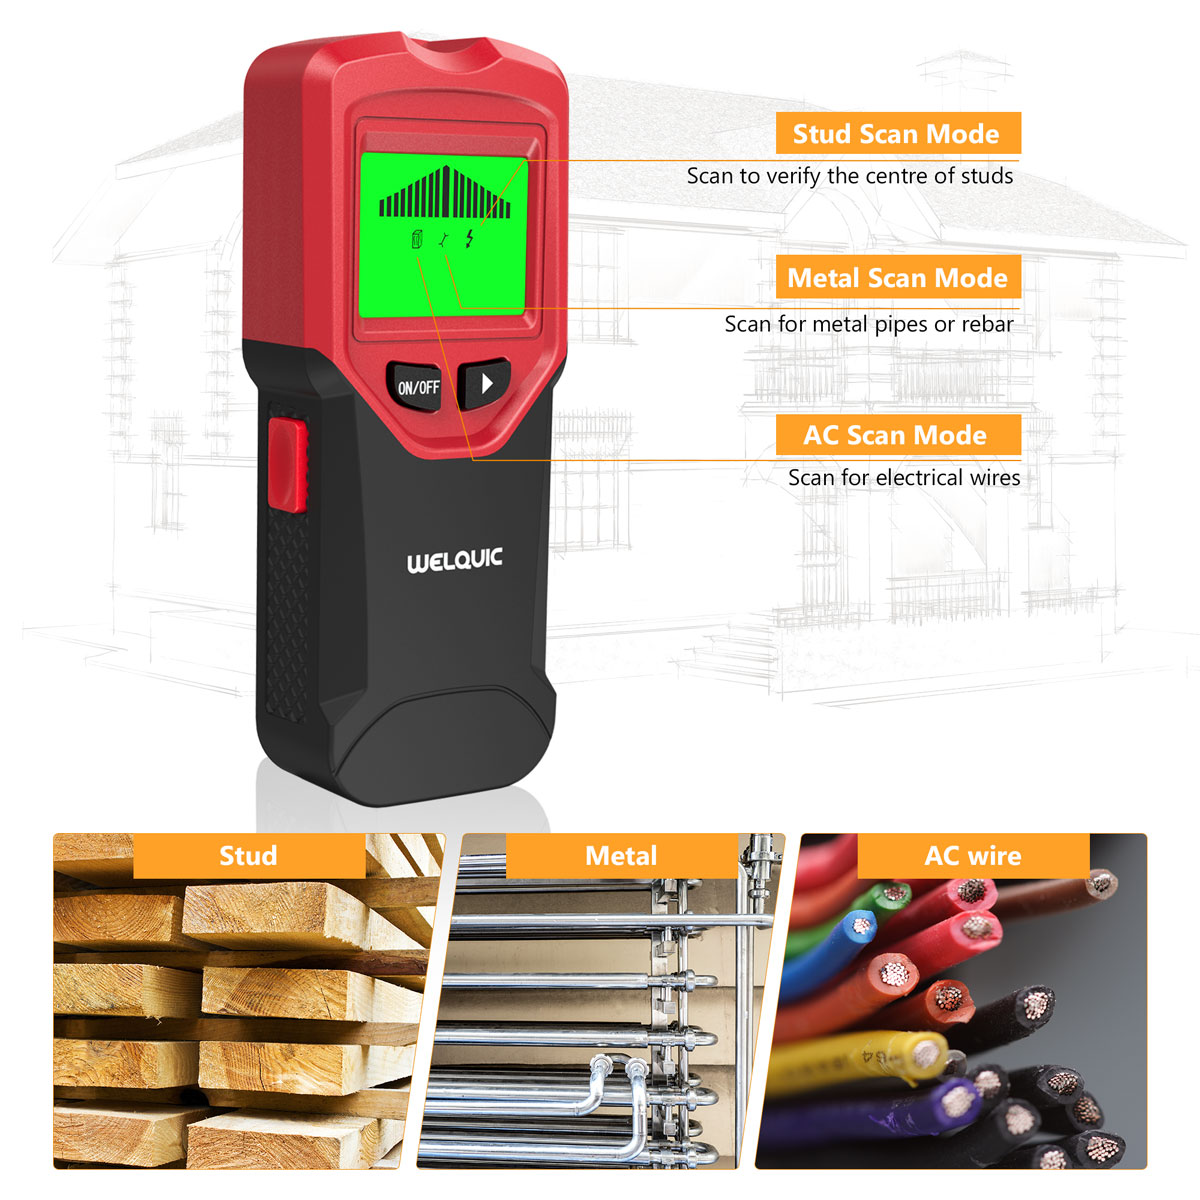 3in1 Lcd Stud Wood Wall Center Finder Scanner Metal Ac Live Wire Locating Electrical Wiring Behind Walls Which Can Accurately Locates Hidden Objects Rebar Studs And Steel Copper Pipes Wirewood Wooden Frames